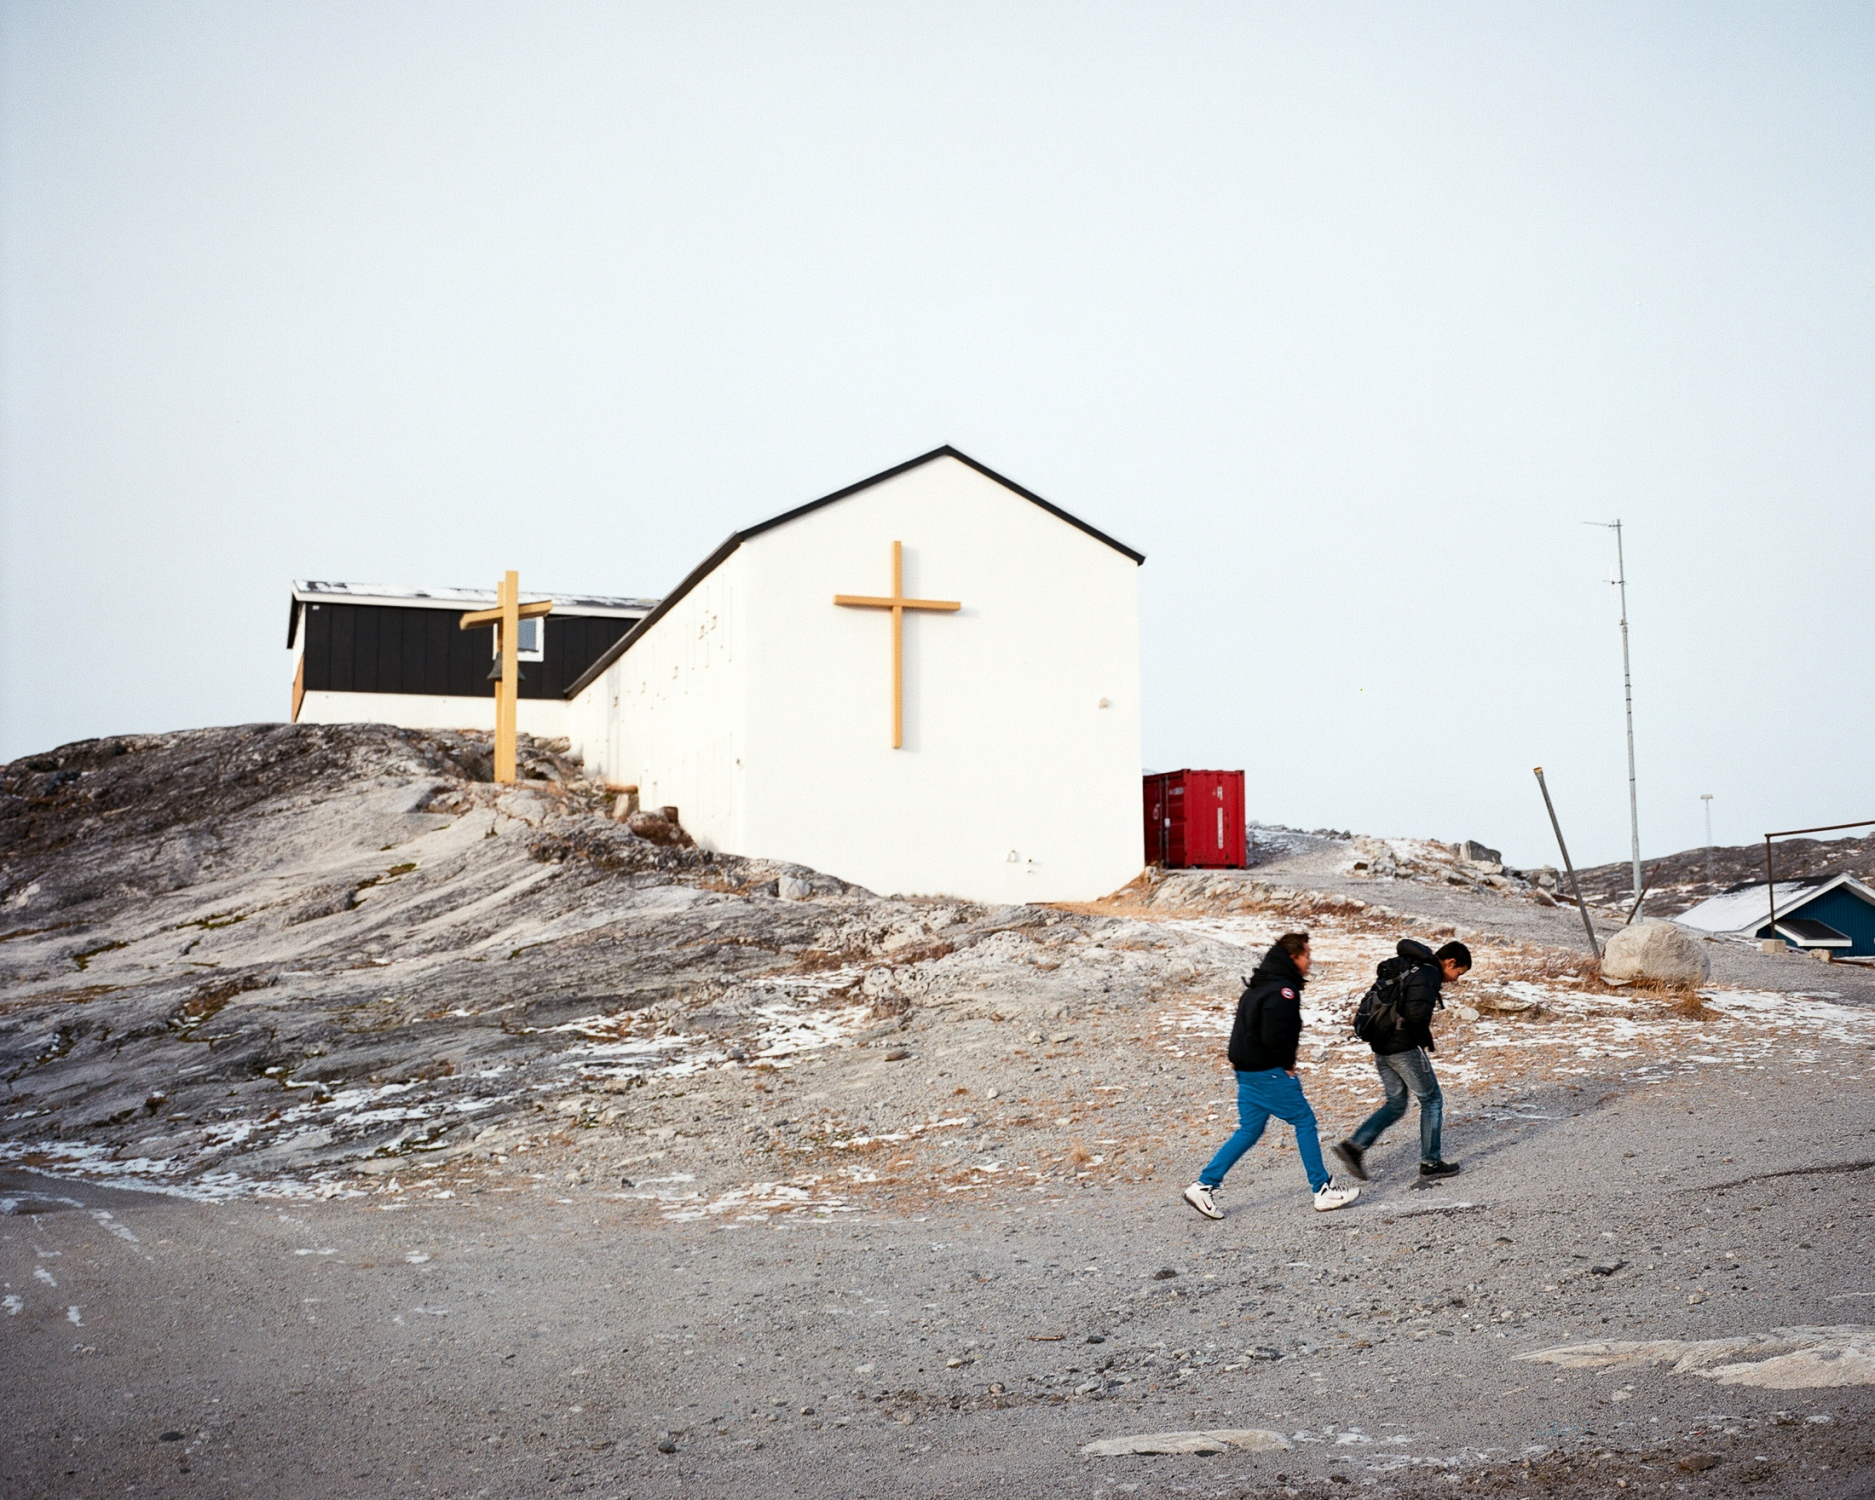 Greenlanders were Christianized around the year 1.000. Most of them are Lutherans. But among the population, remains a lot of traditional Inuit beliefs. it is often said that Christianism and colonialism started to bring social and moral issues on the island. Here is the Krist Konge Kirke, the sole catholic church of Greenland, located in Nuuk.